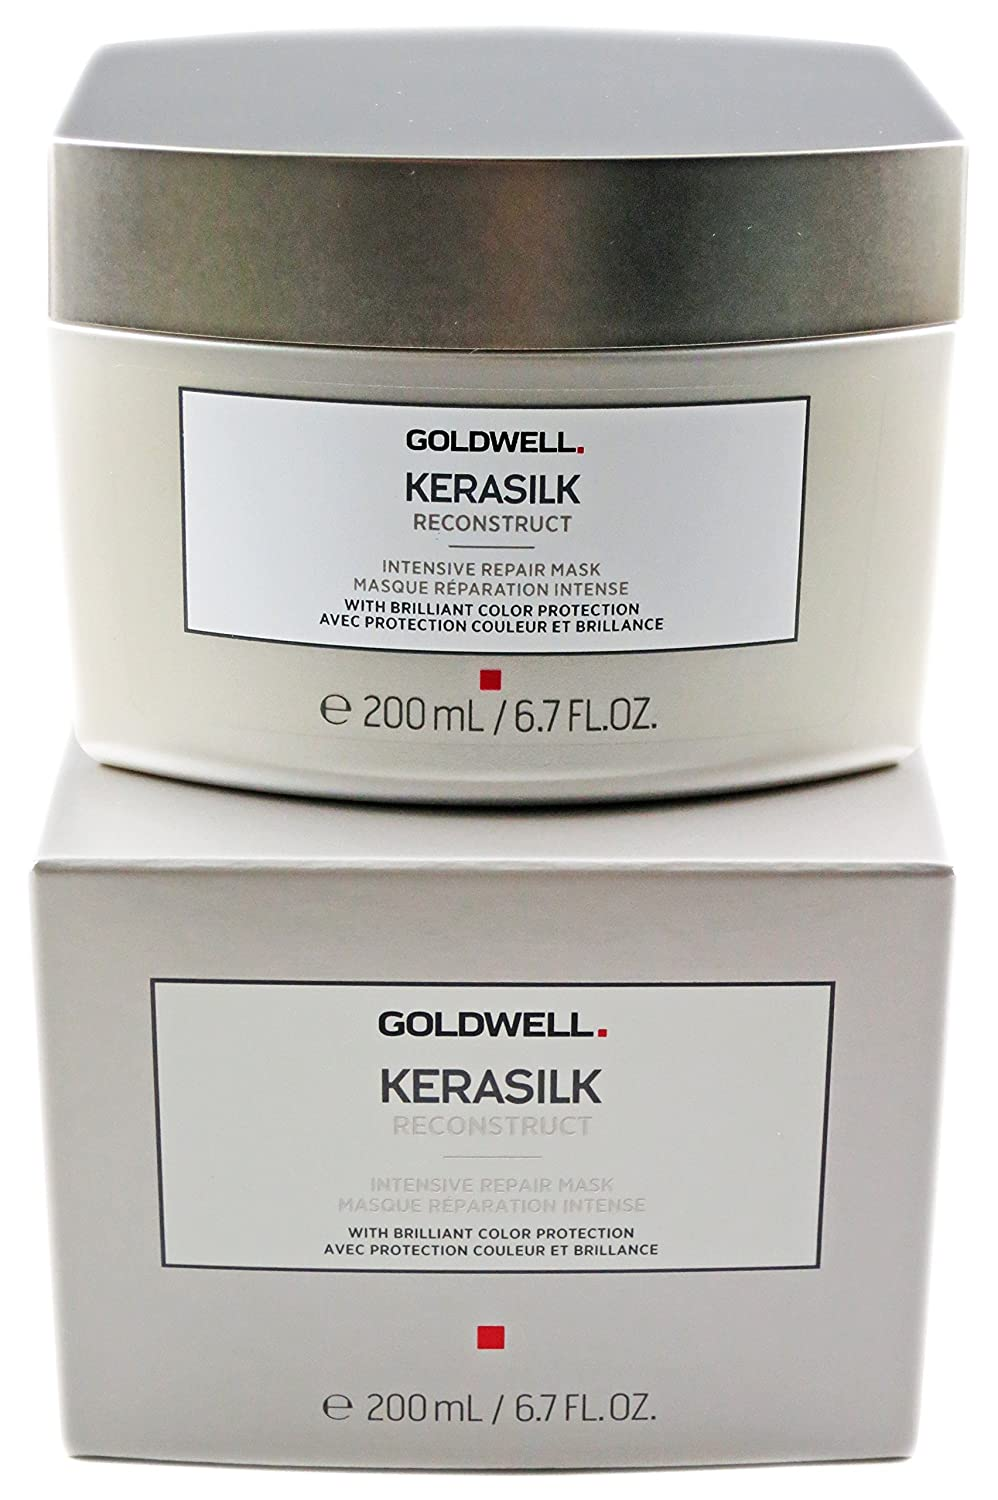 Goldwell Kerasilk Reconstruct Intensive Repair Mask (For Stressed and Damaged Hair) 200ml GOL265217